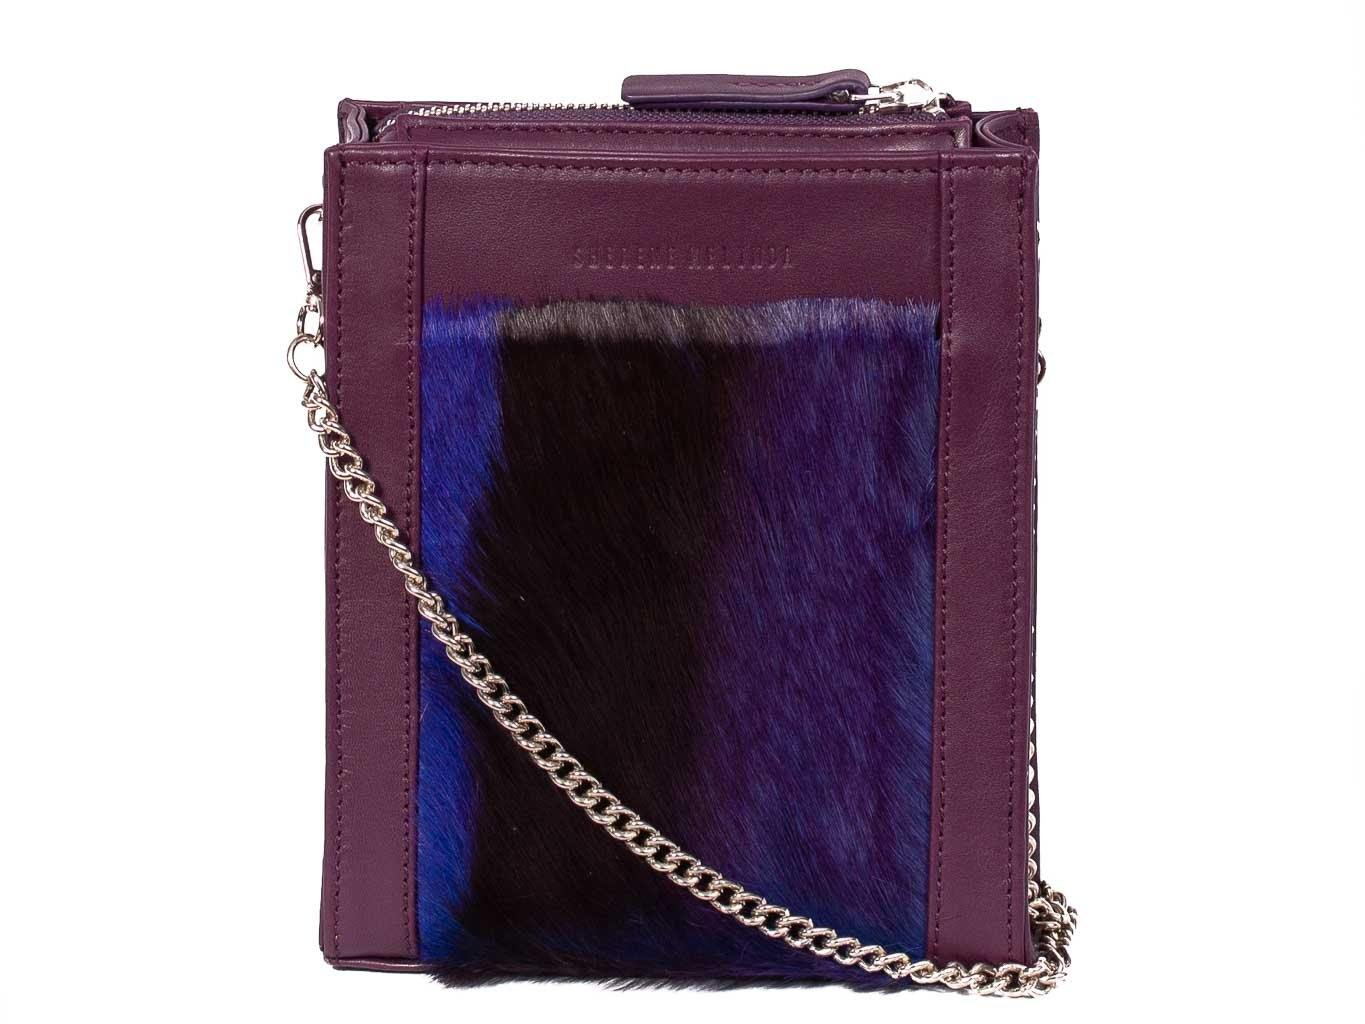 Messenger Springbok Handbag in Deep Purple with a stripe feature by Sherene Melinda front strap